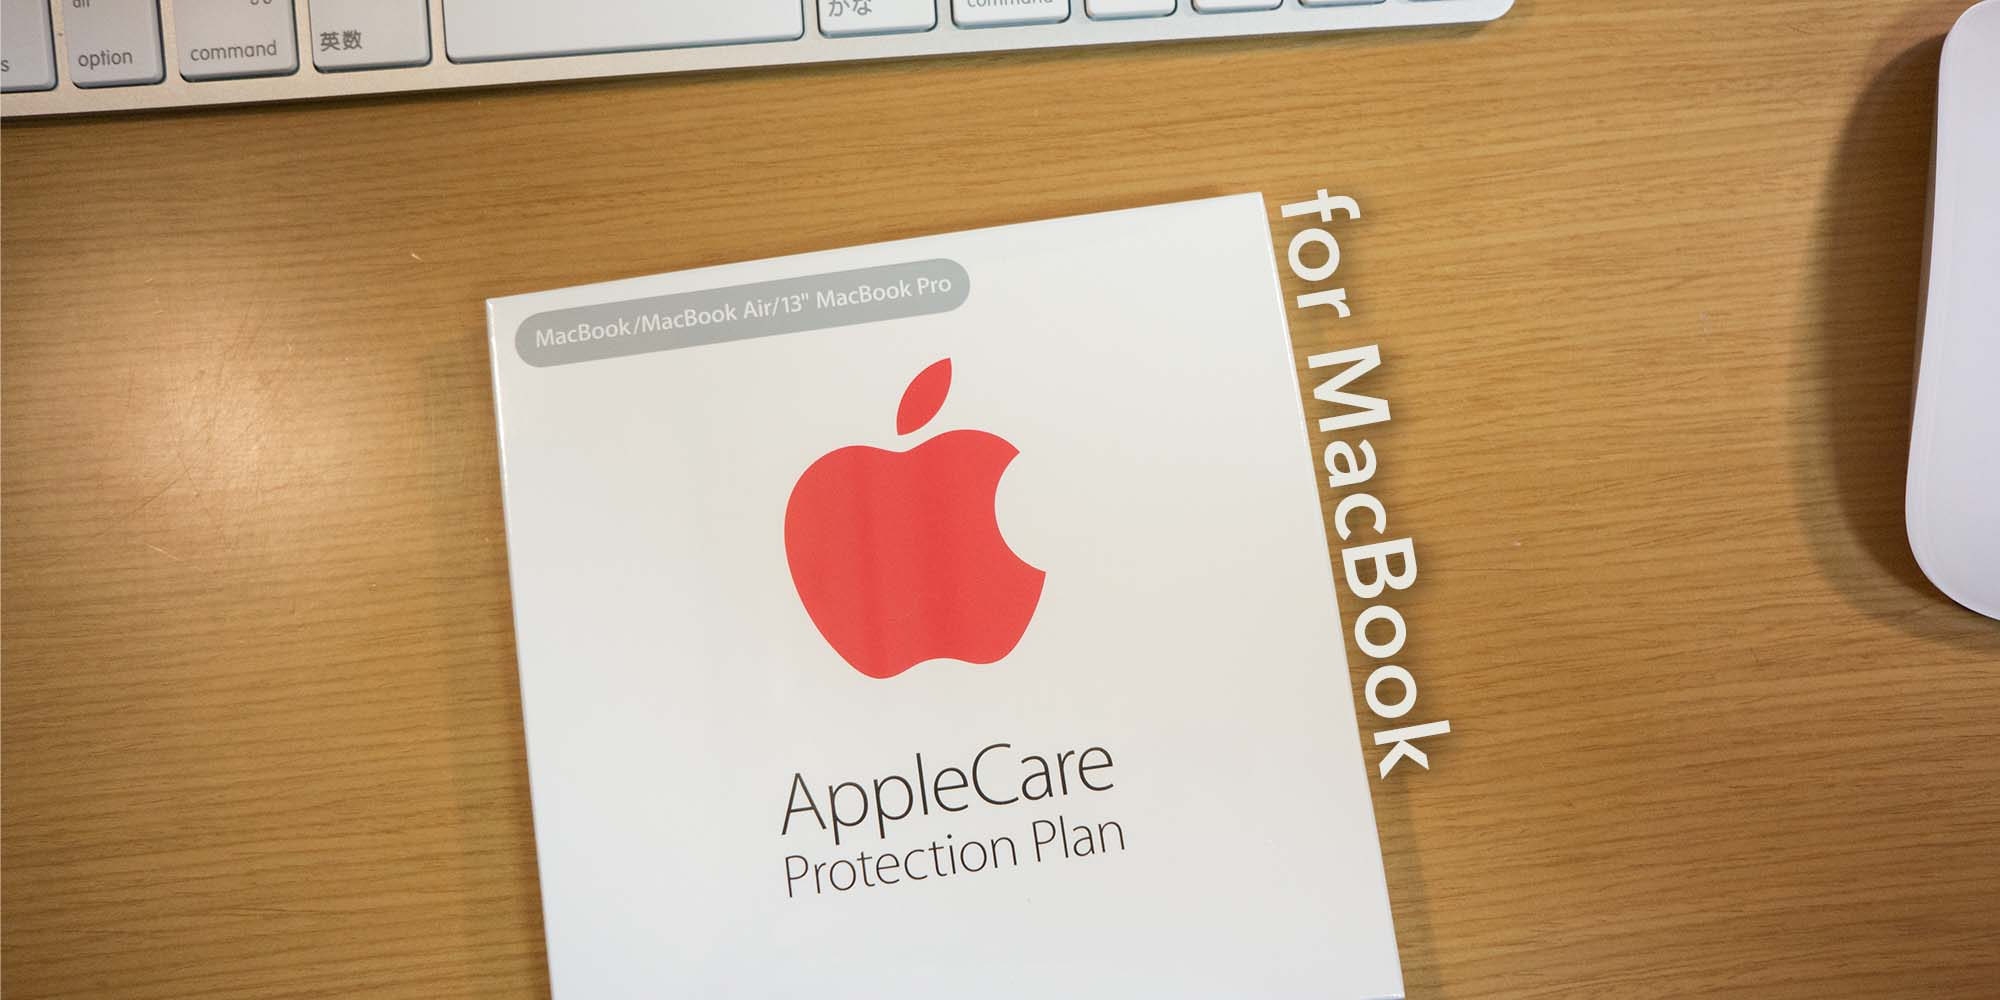 macbookapplecare